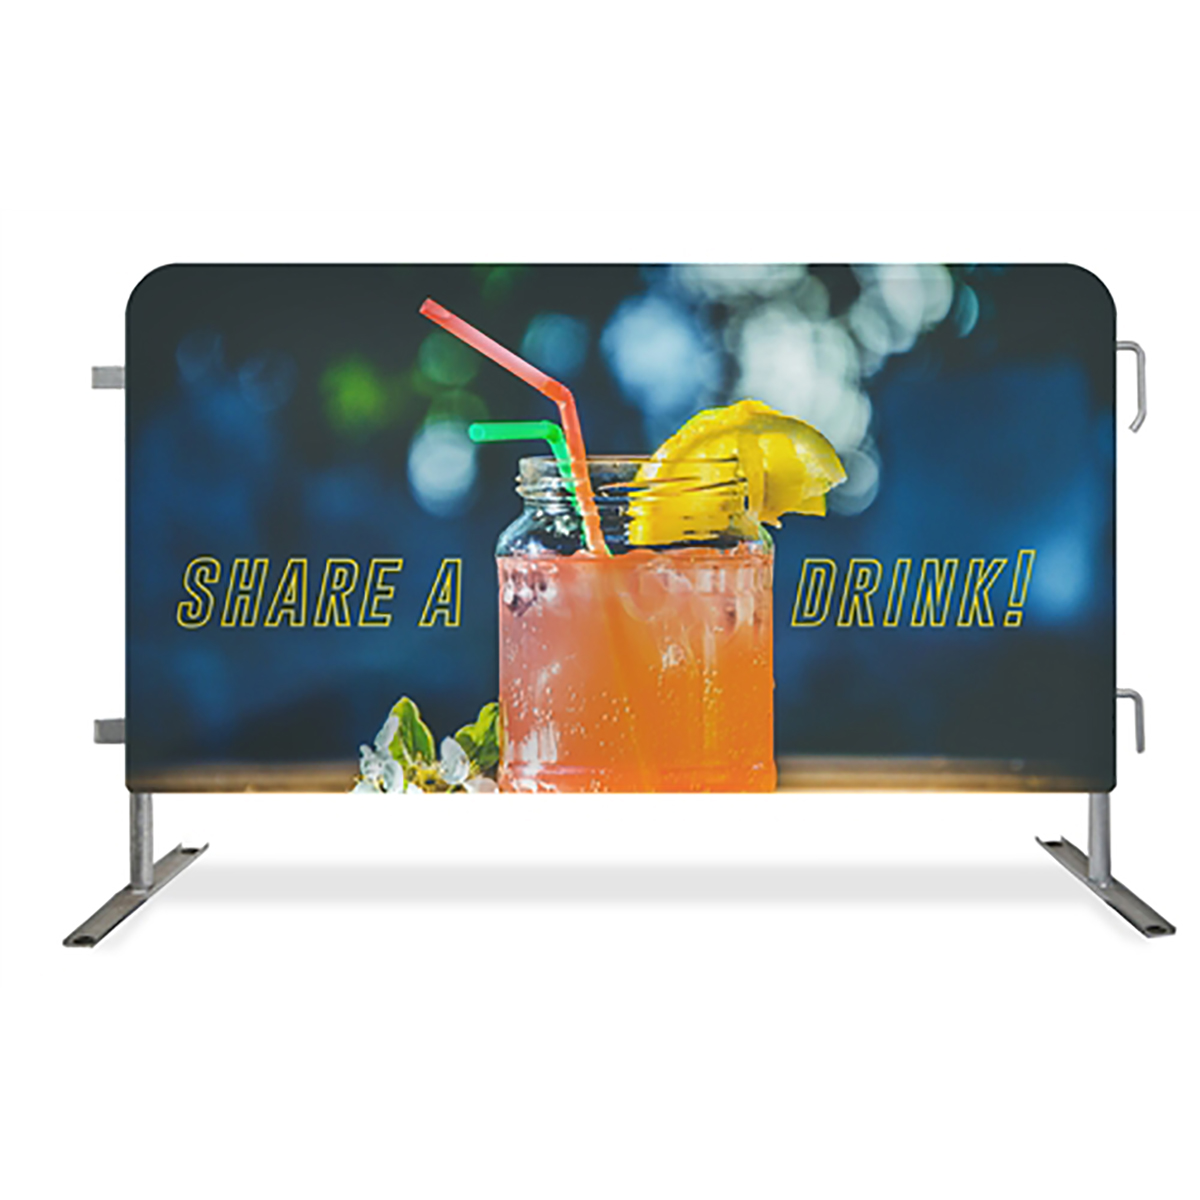 Double Sided Premium Barrier Cover - Small